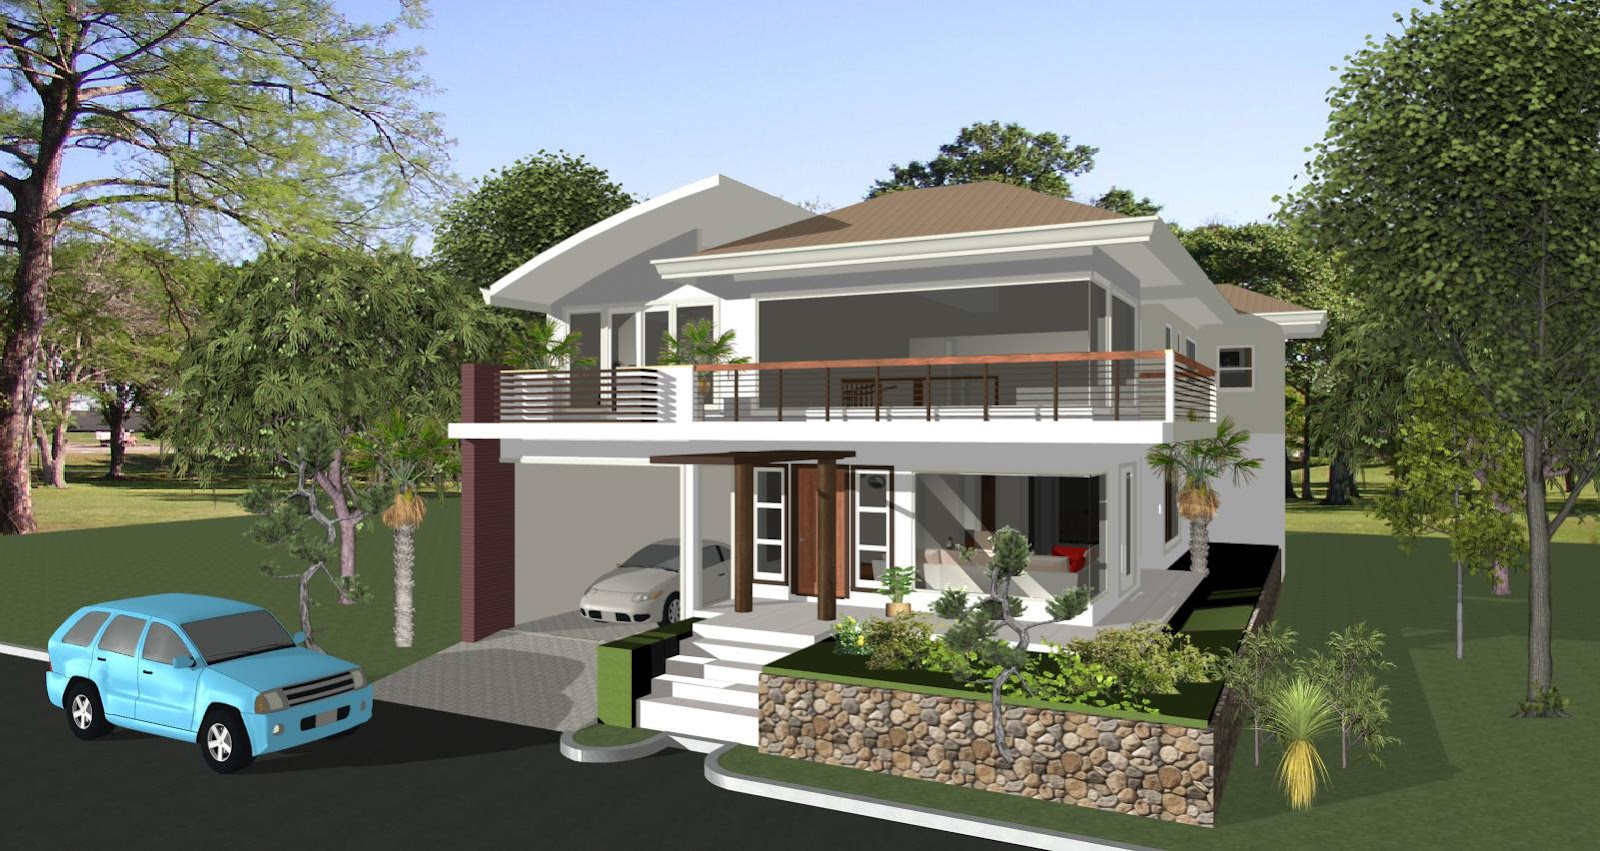 House designs philippines architect bill house plans for New home construction plans